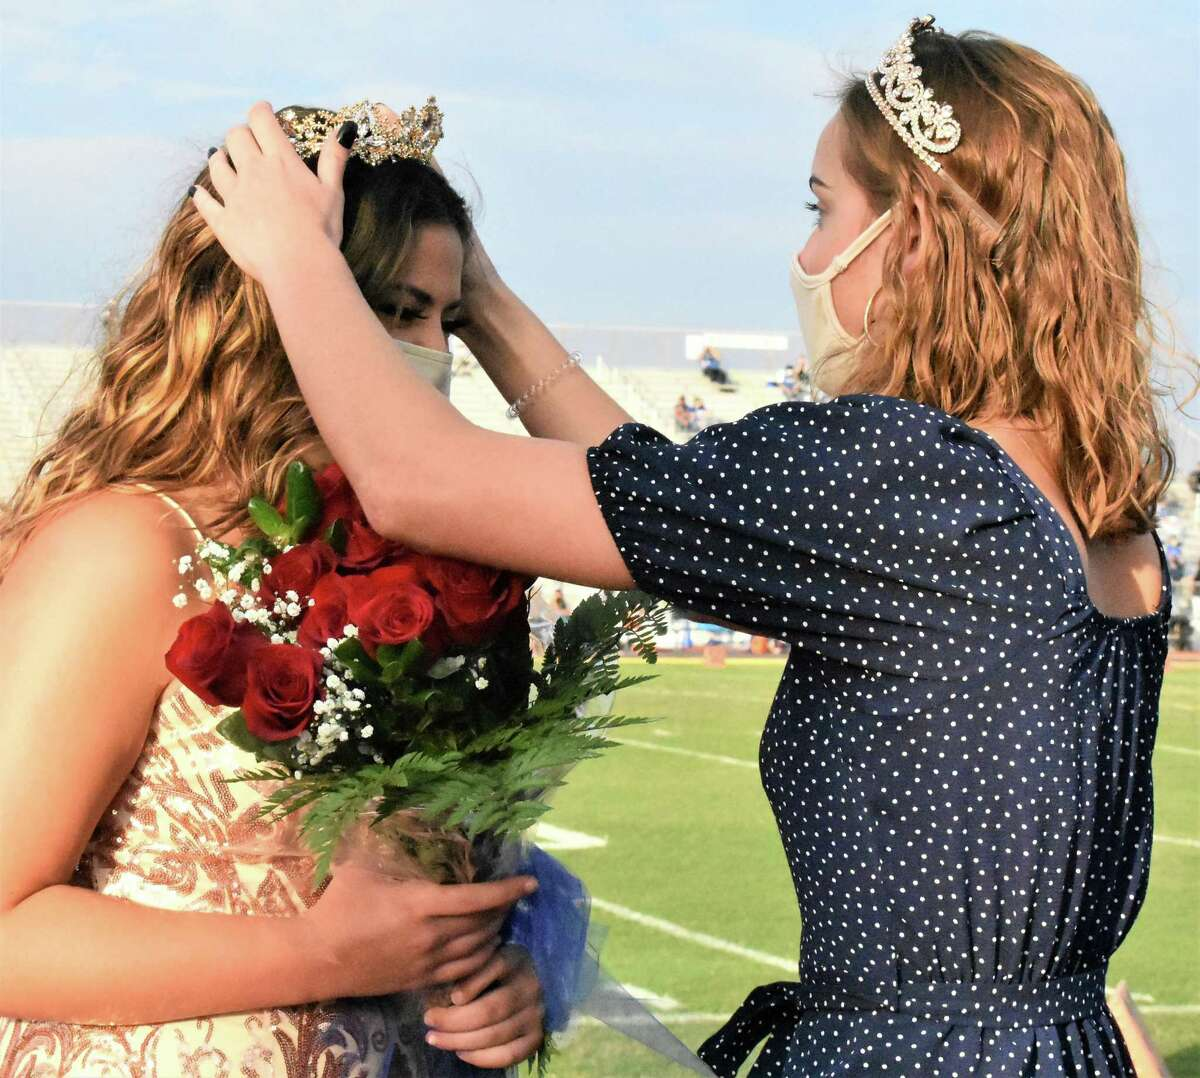 Needville High School senior Amanda Nowak, left, is crowned 2020 Homecoming Queen by 2019 Homecoming Queen Ashton Schiller prior to the start of the football game on Friday, Sept. 18.